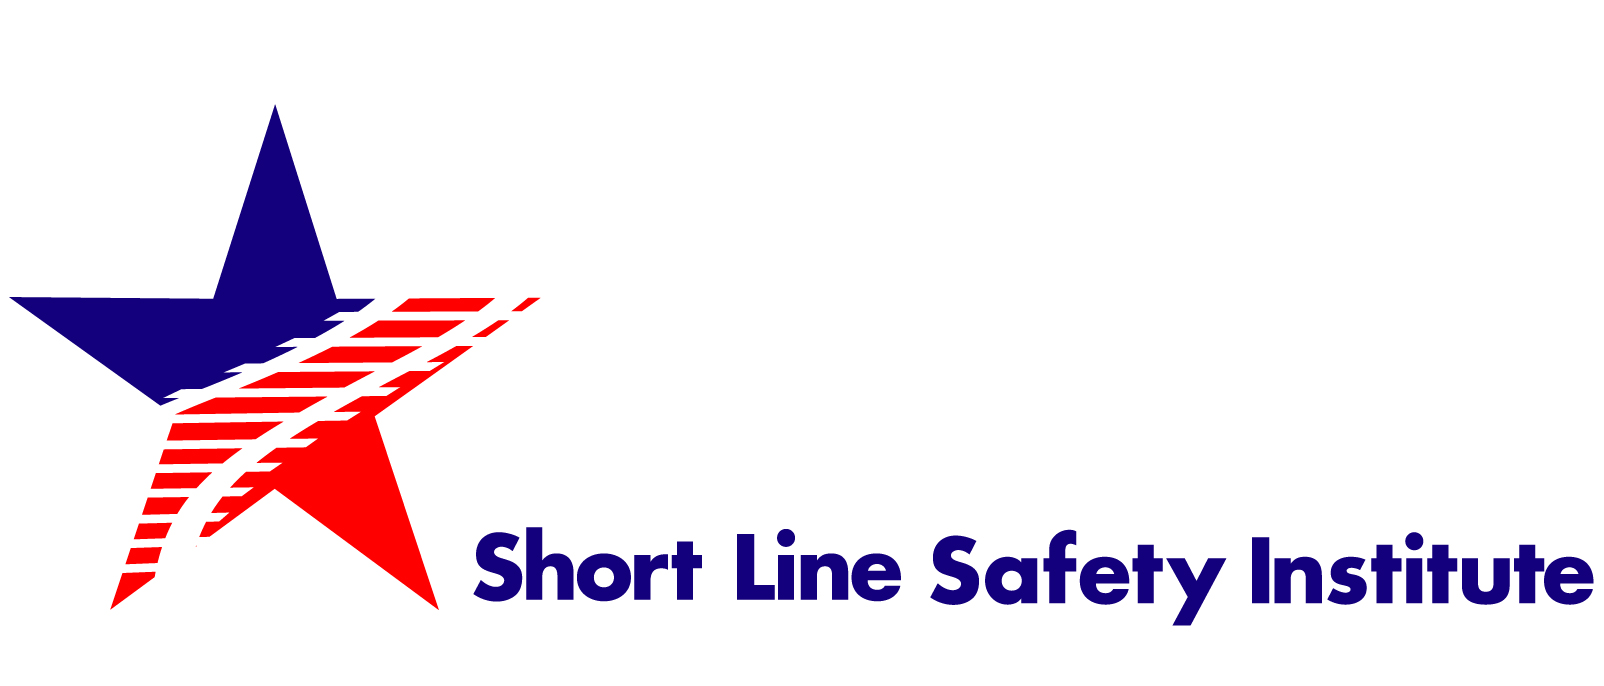 Short Line Safety Institute Introduces New Hire